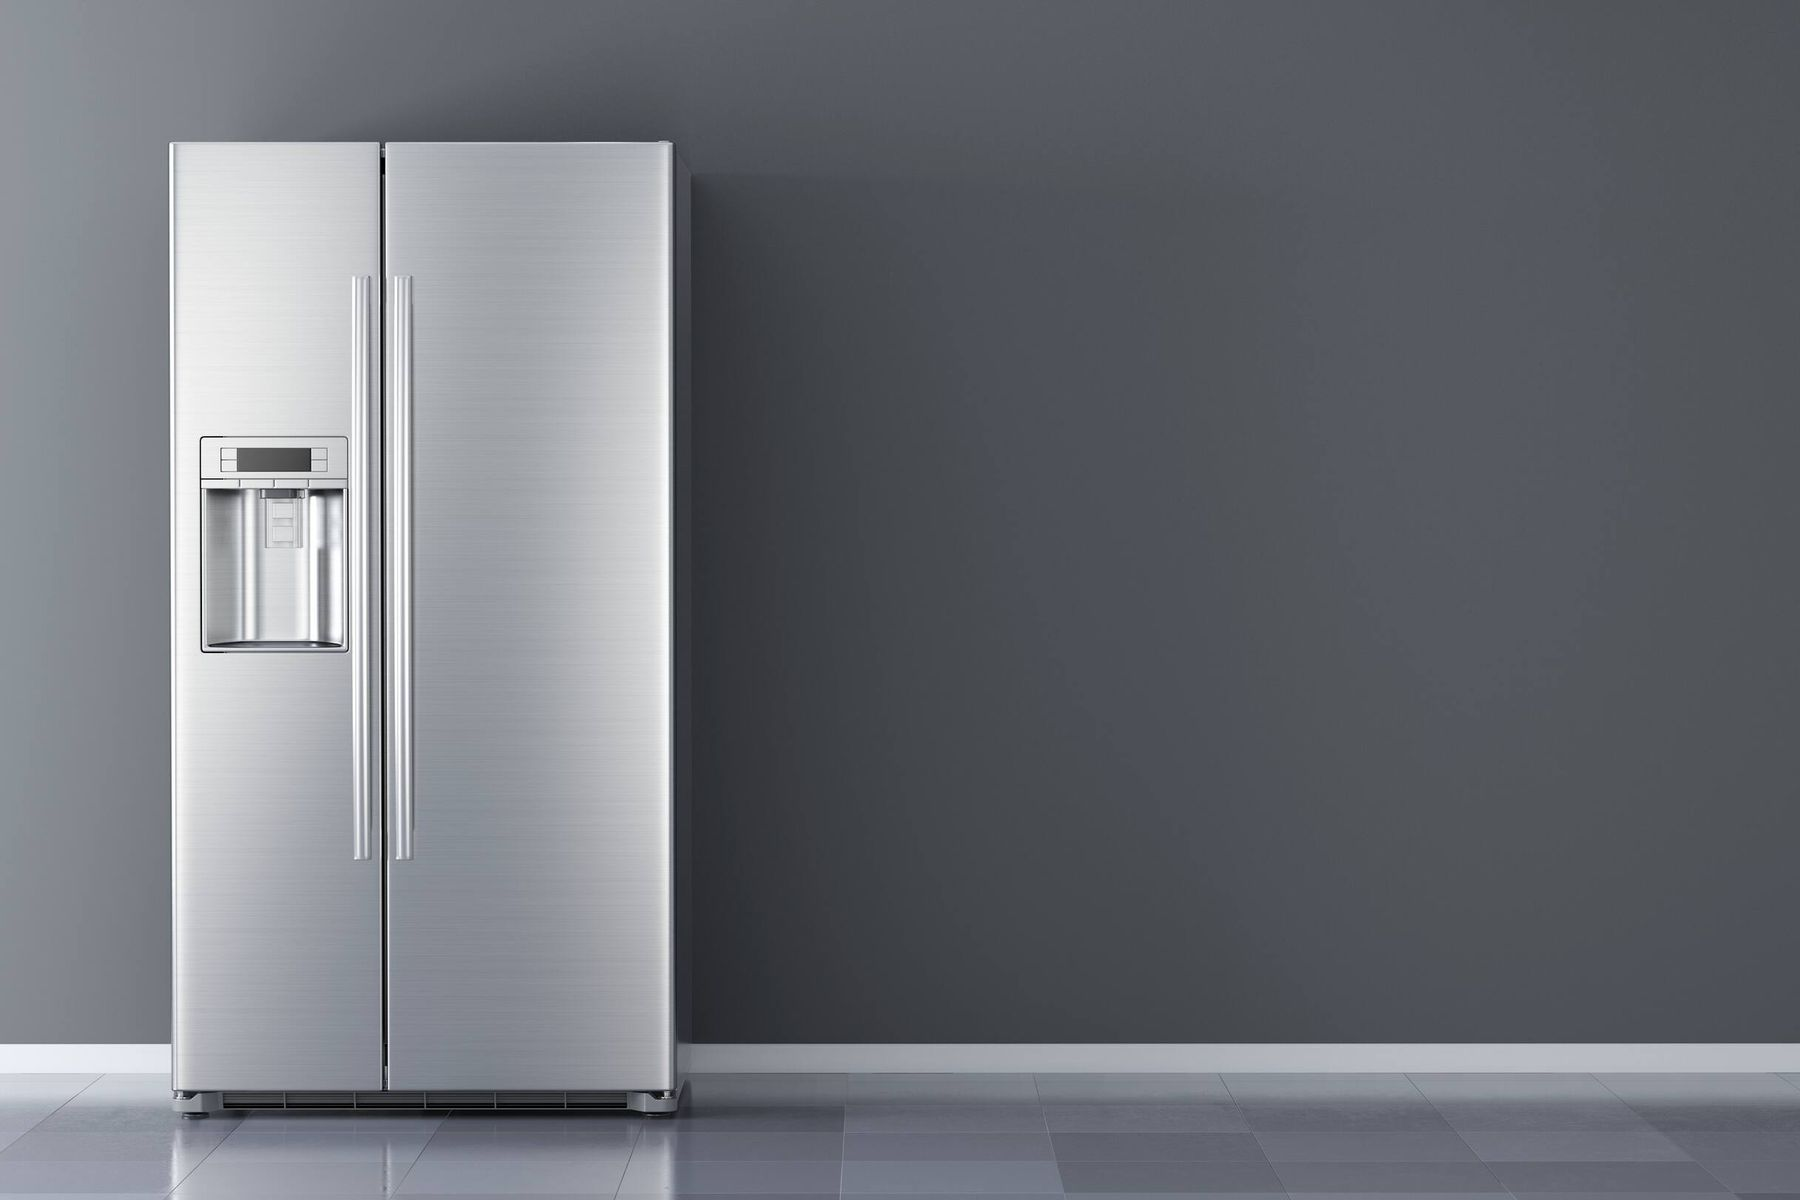 How to Clean Your Refrigerator Exteriors | Cleanipedia